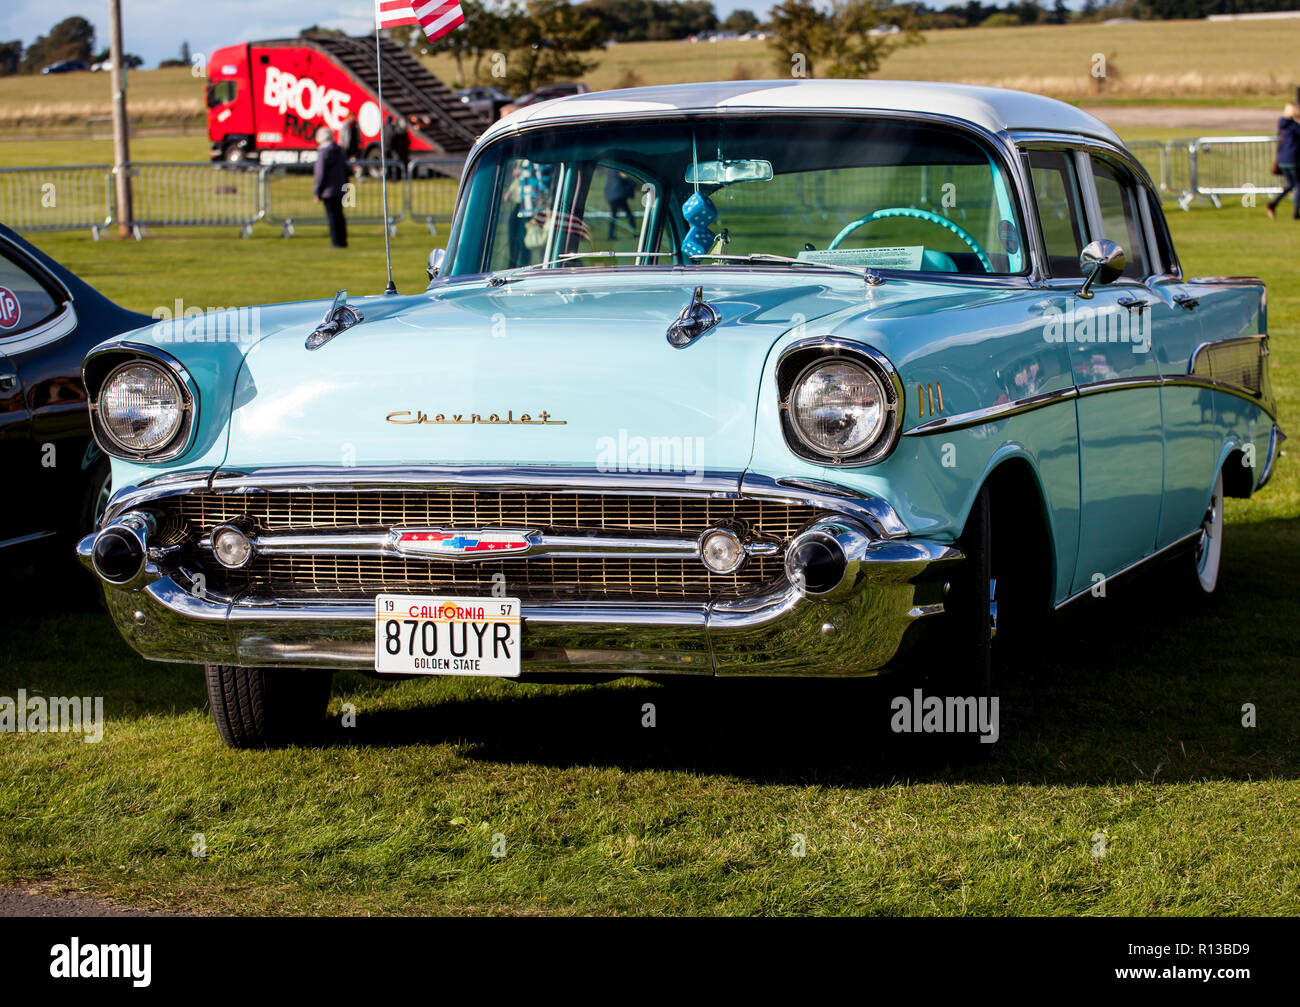 An old American Chevrolet car from the 1950s Stock Photo